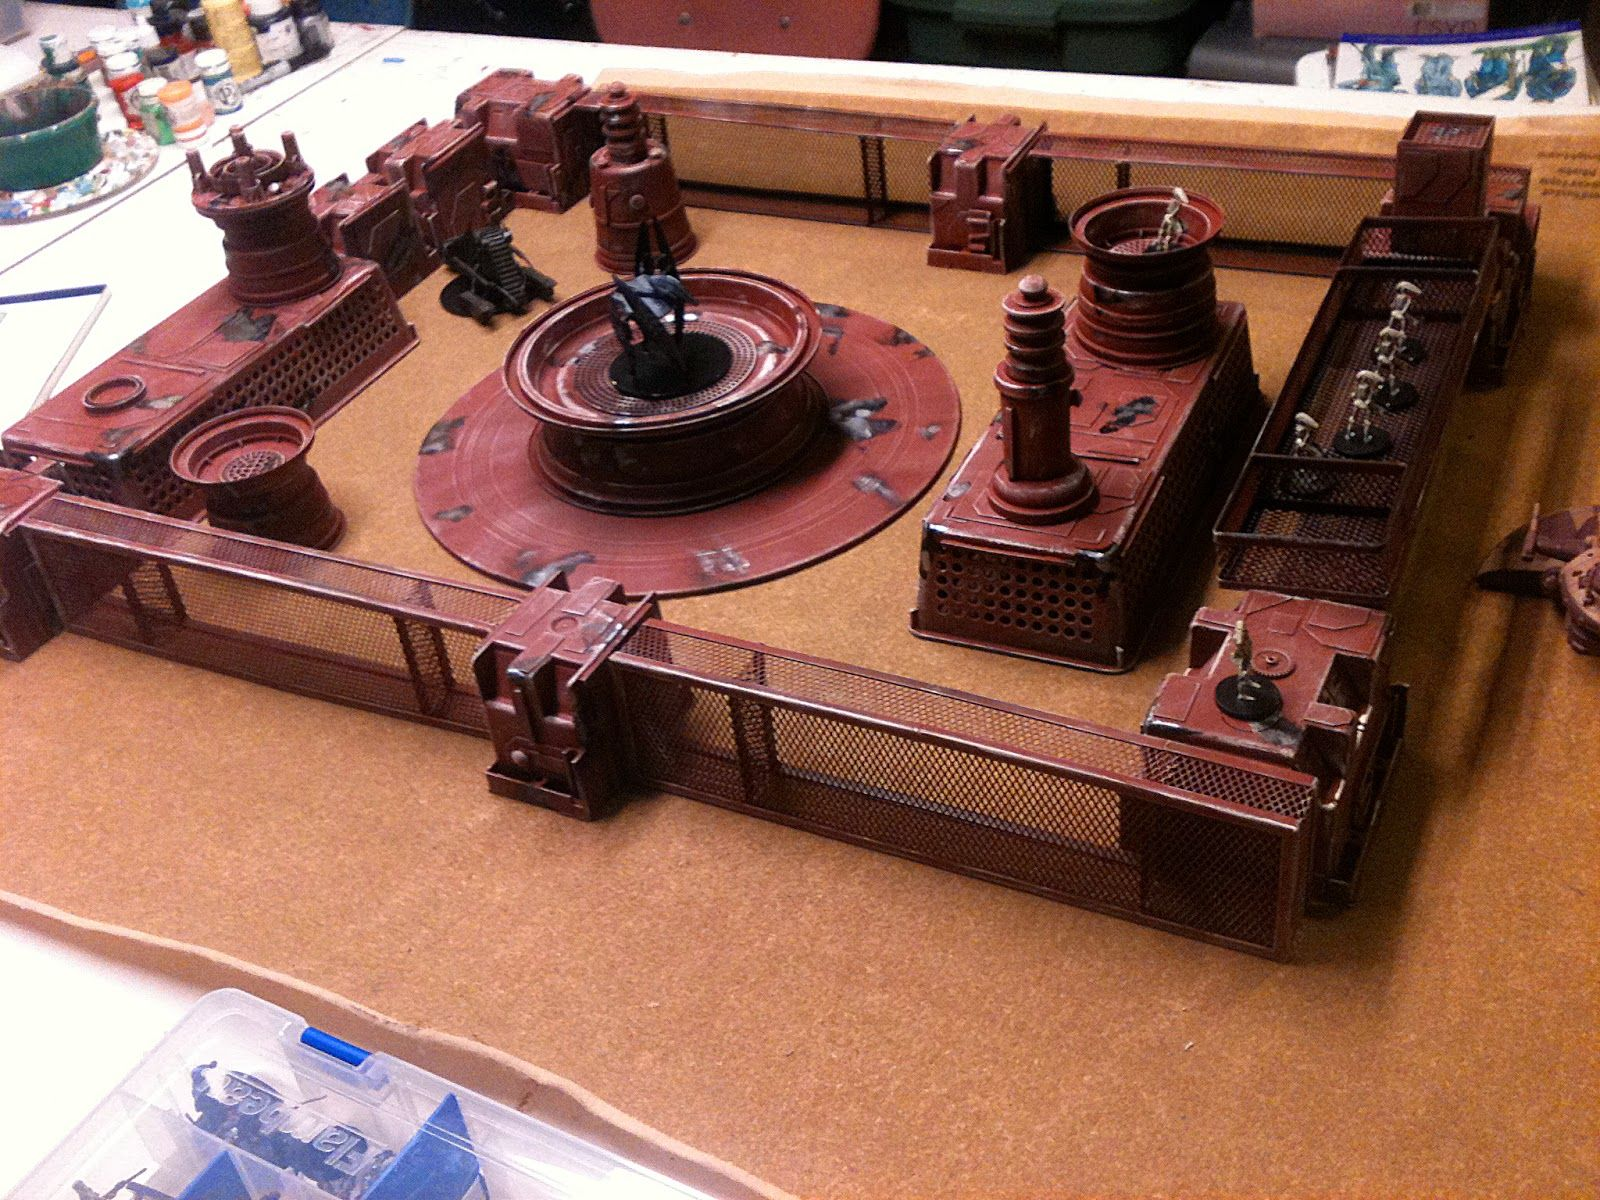 Doctor Merkury's Lab Sci Fi terrain on the Cheap